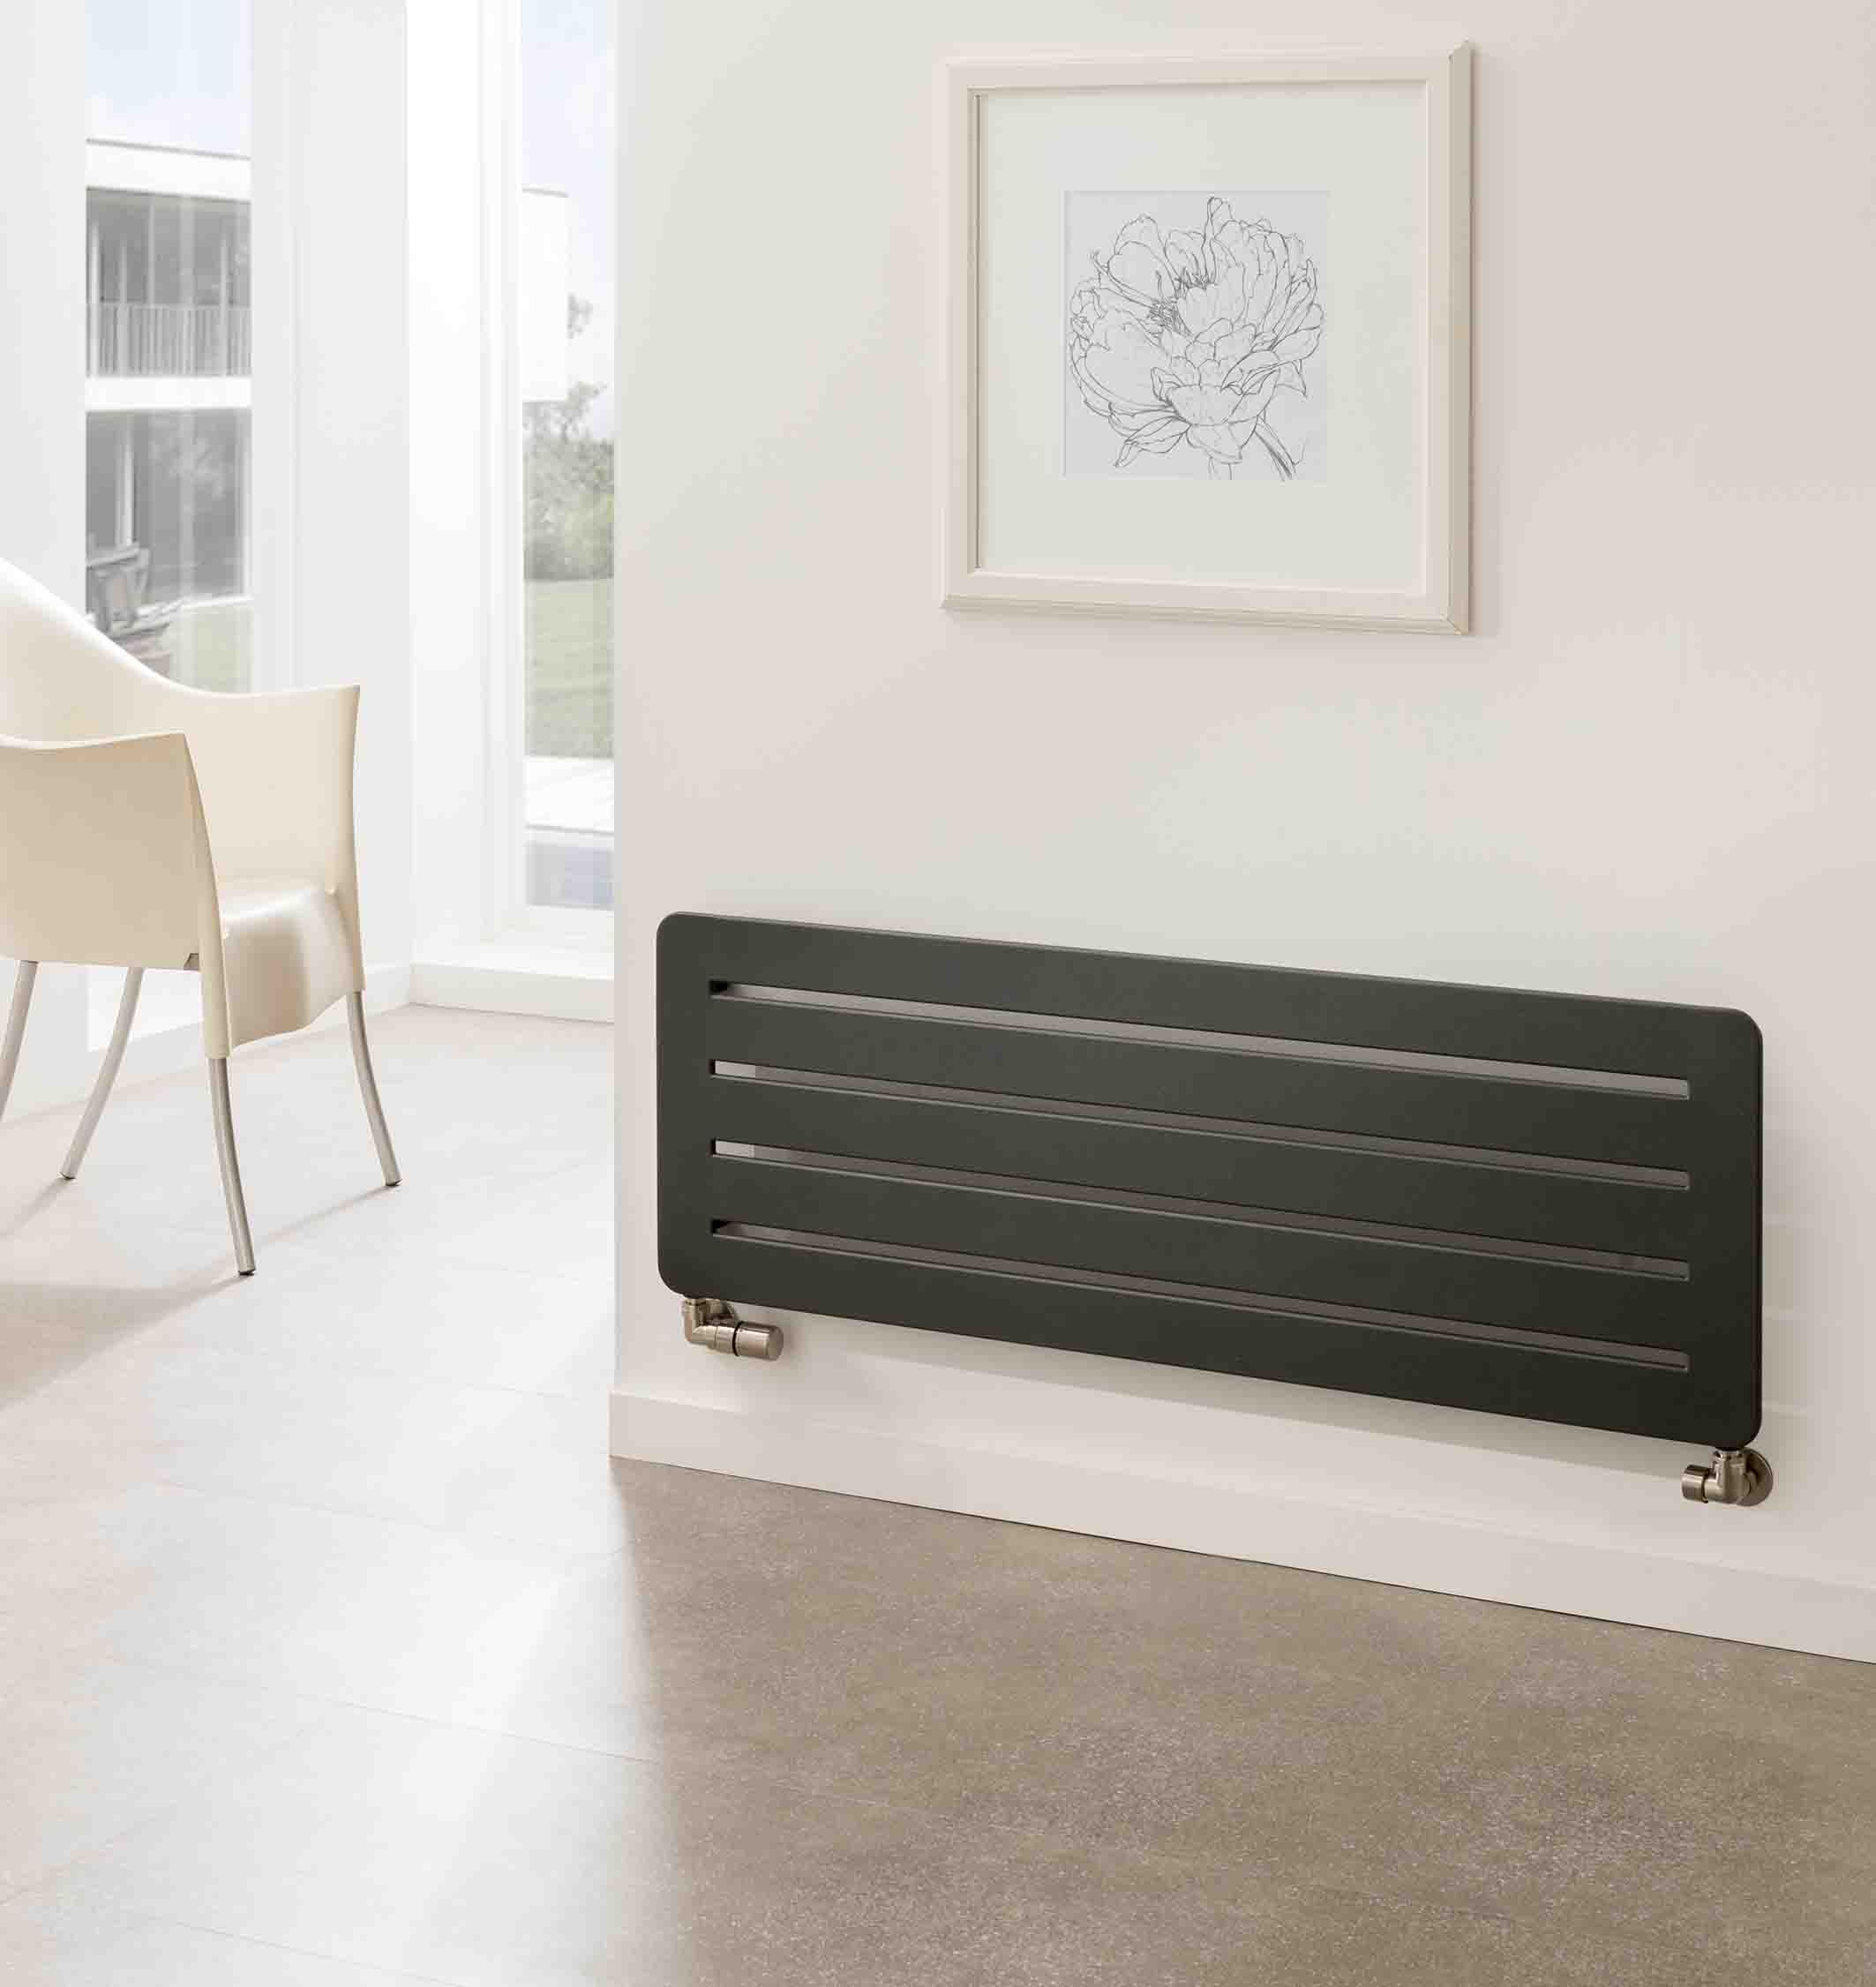 The Radiator Company introduces a brand new